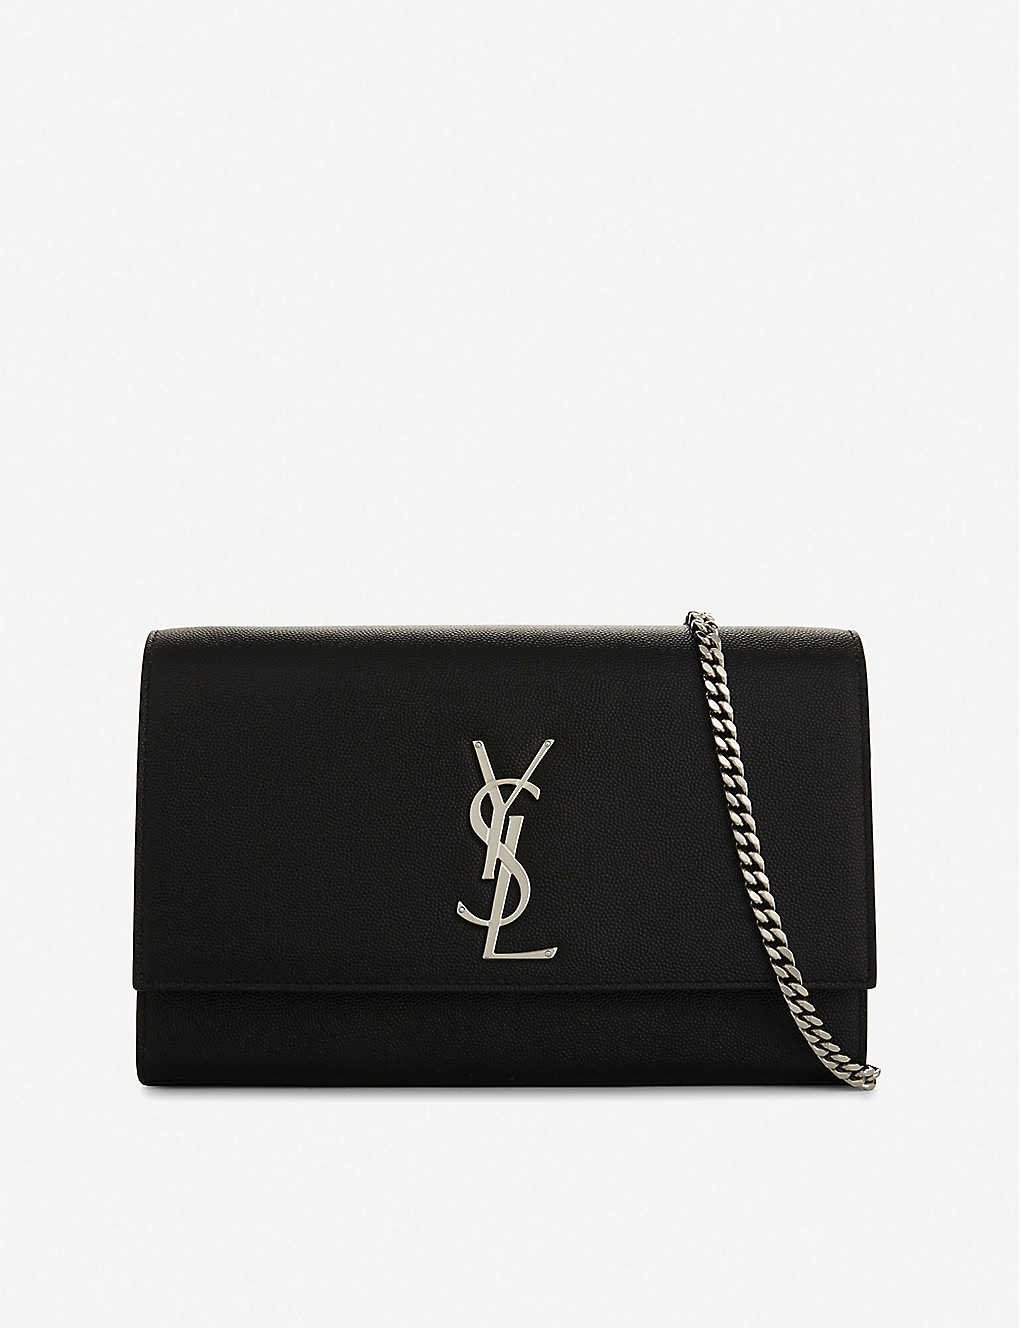 SAINT LAURENT: Kate medium monogram leather shoulder bag